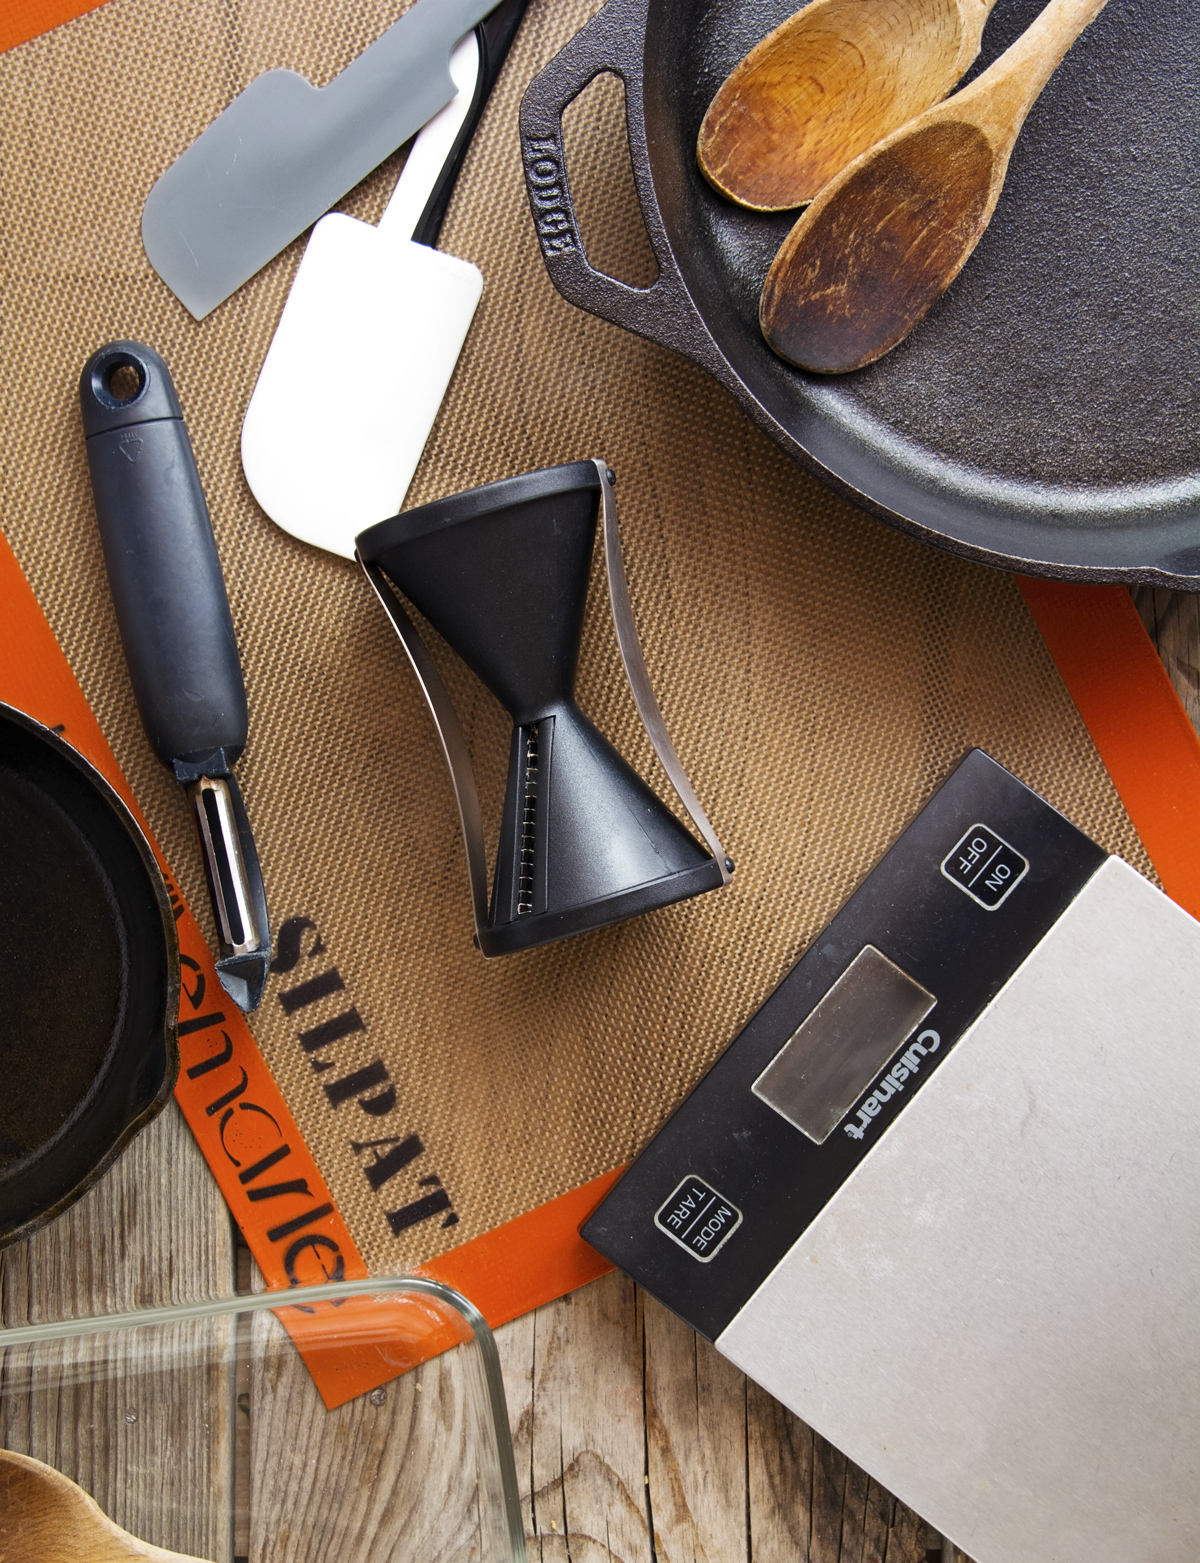 My Top 10 Favorite Kitchen Tools